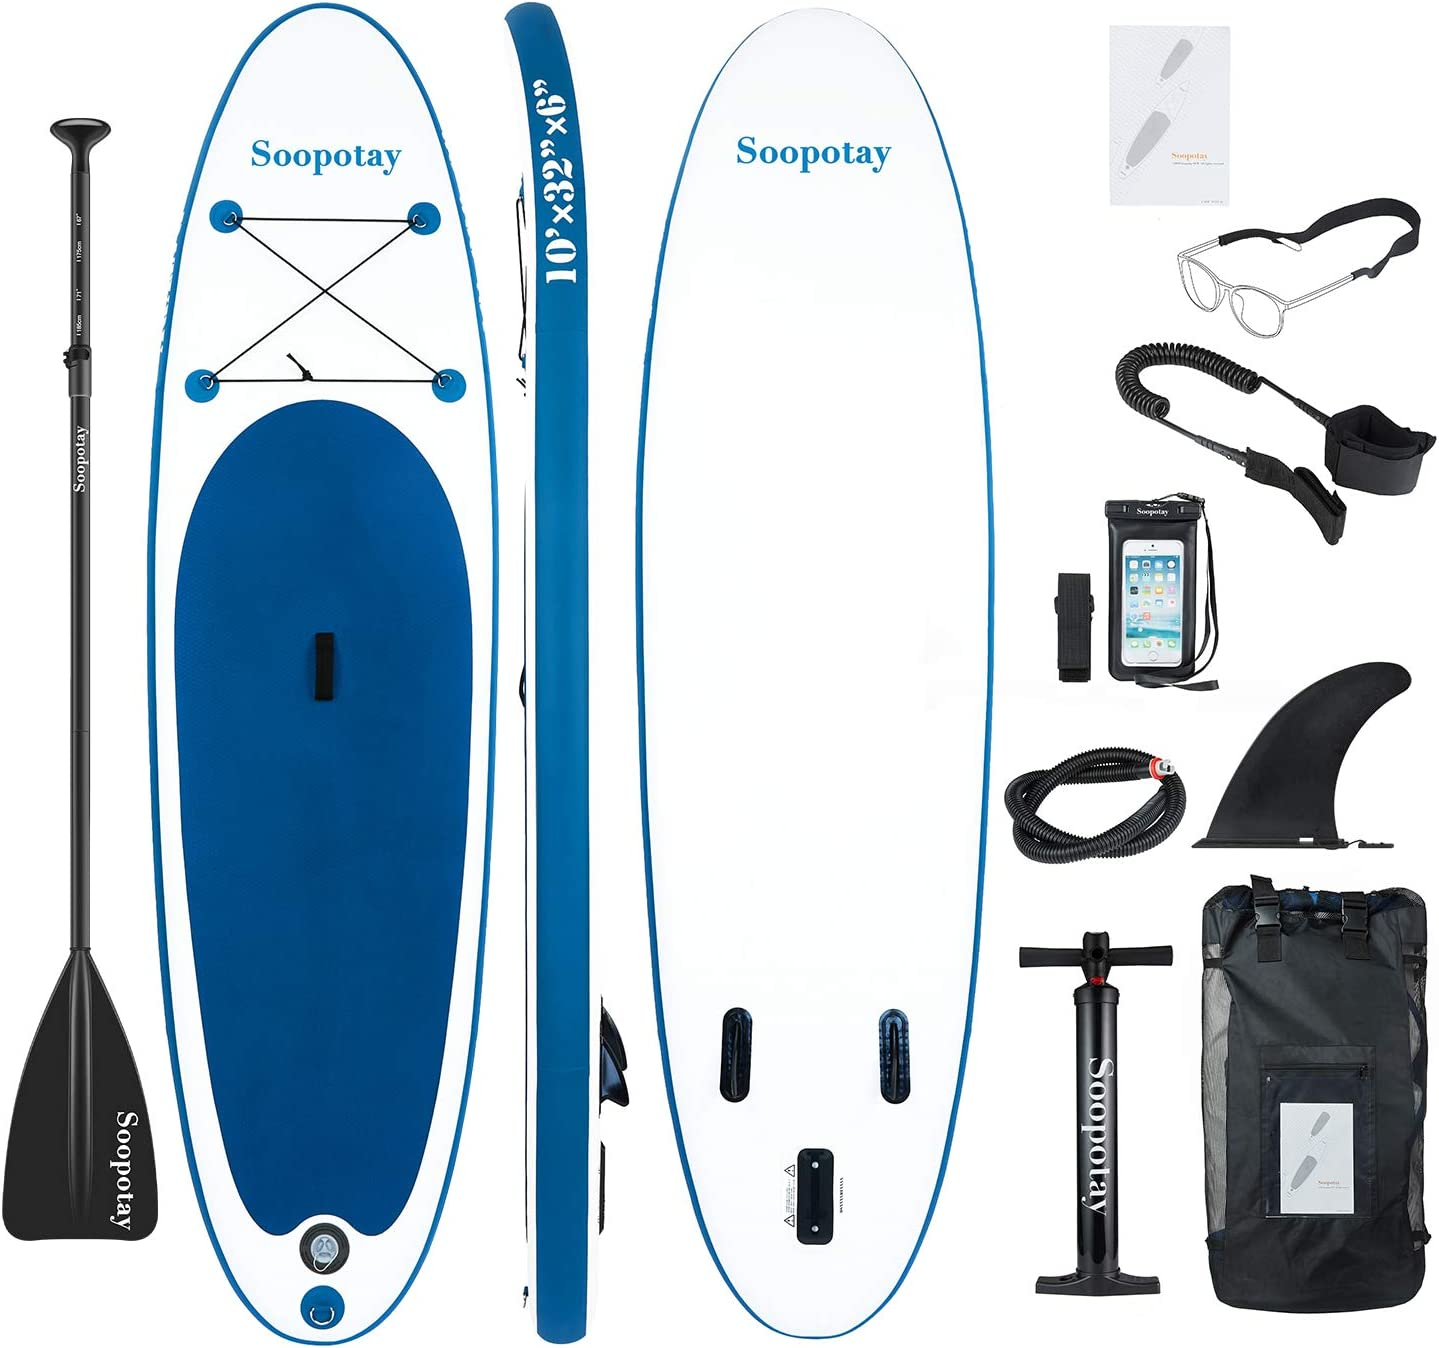 SOOPOTAY Inflatable SUP Stand Up Paddle Board, Inflatable SUP Board, iSUP Package with All Accessories All Round-Primary-Navy Blue-10 x 32 x 6